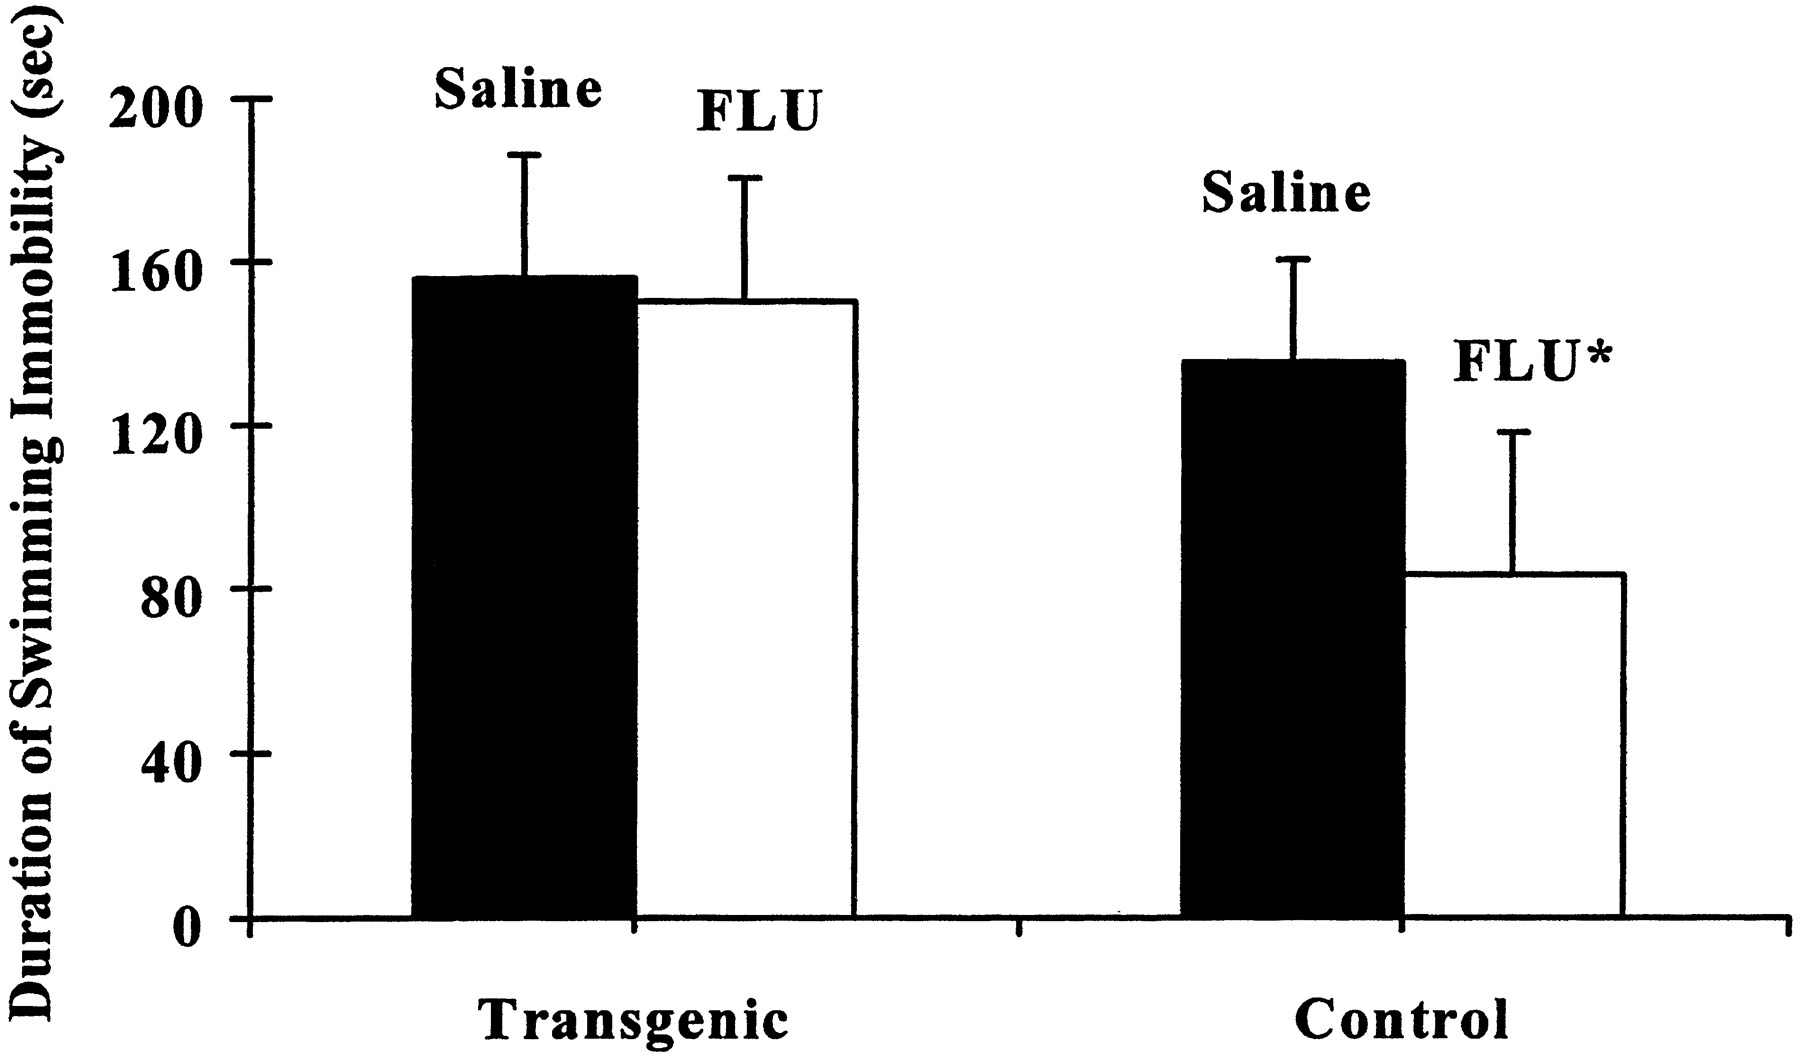 Fluoxetine And Norfluoxetine Levels